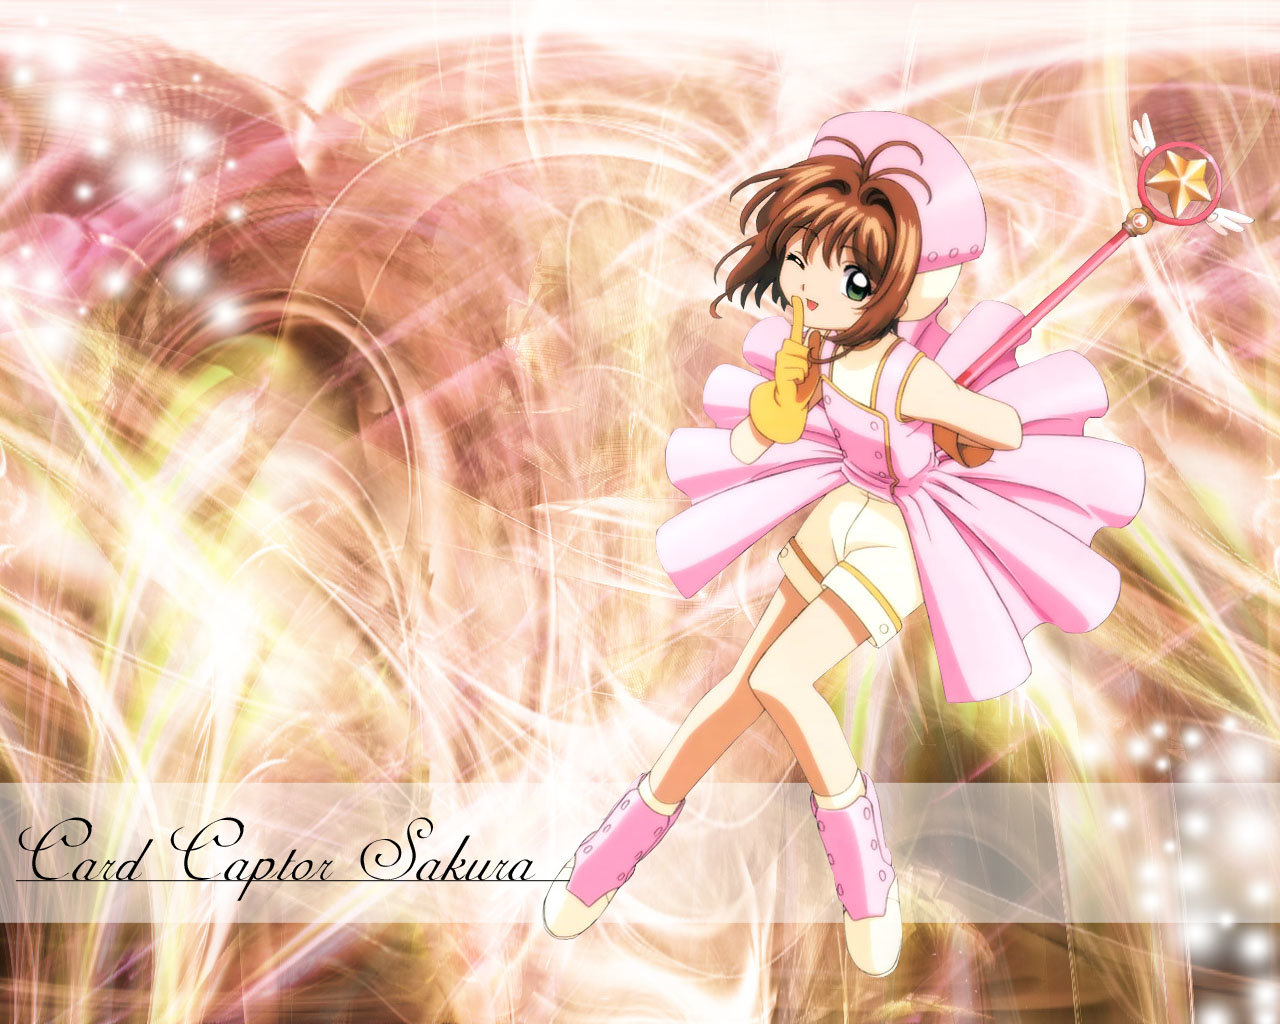 Download hd 1280x1024 Cardcaptor Sakura desktop background ID:273764 for free